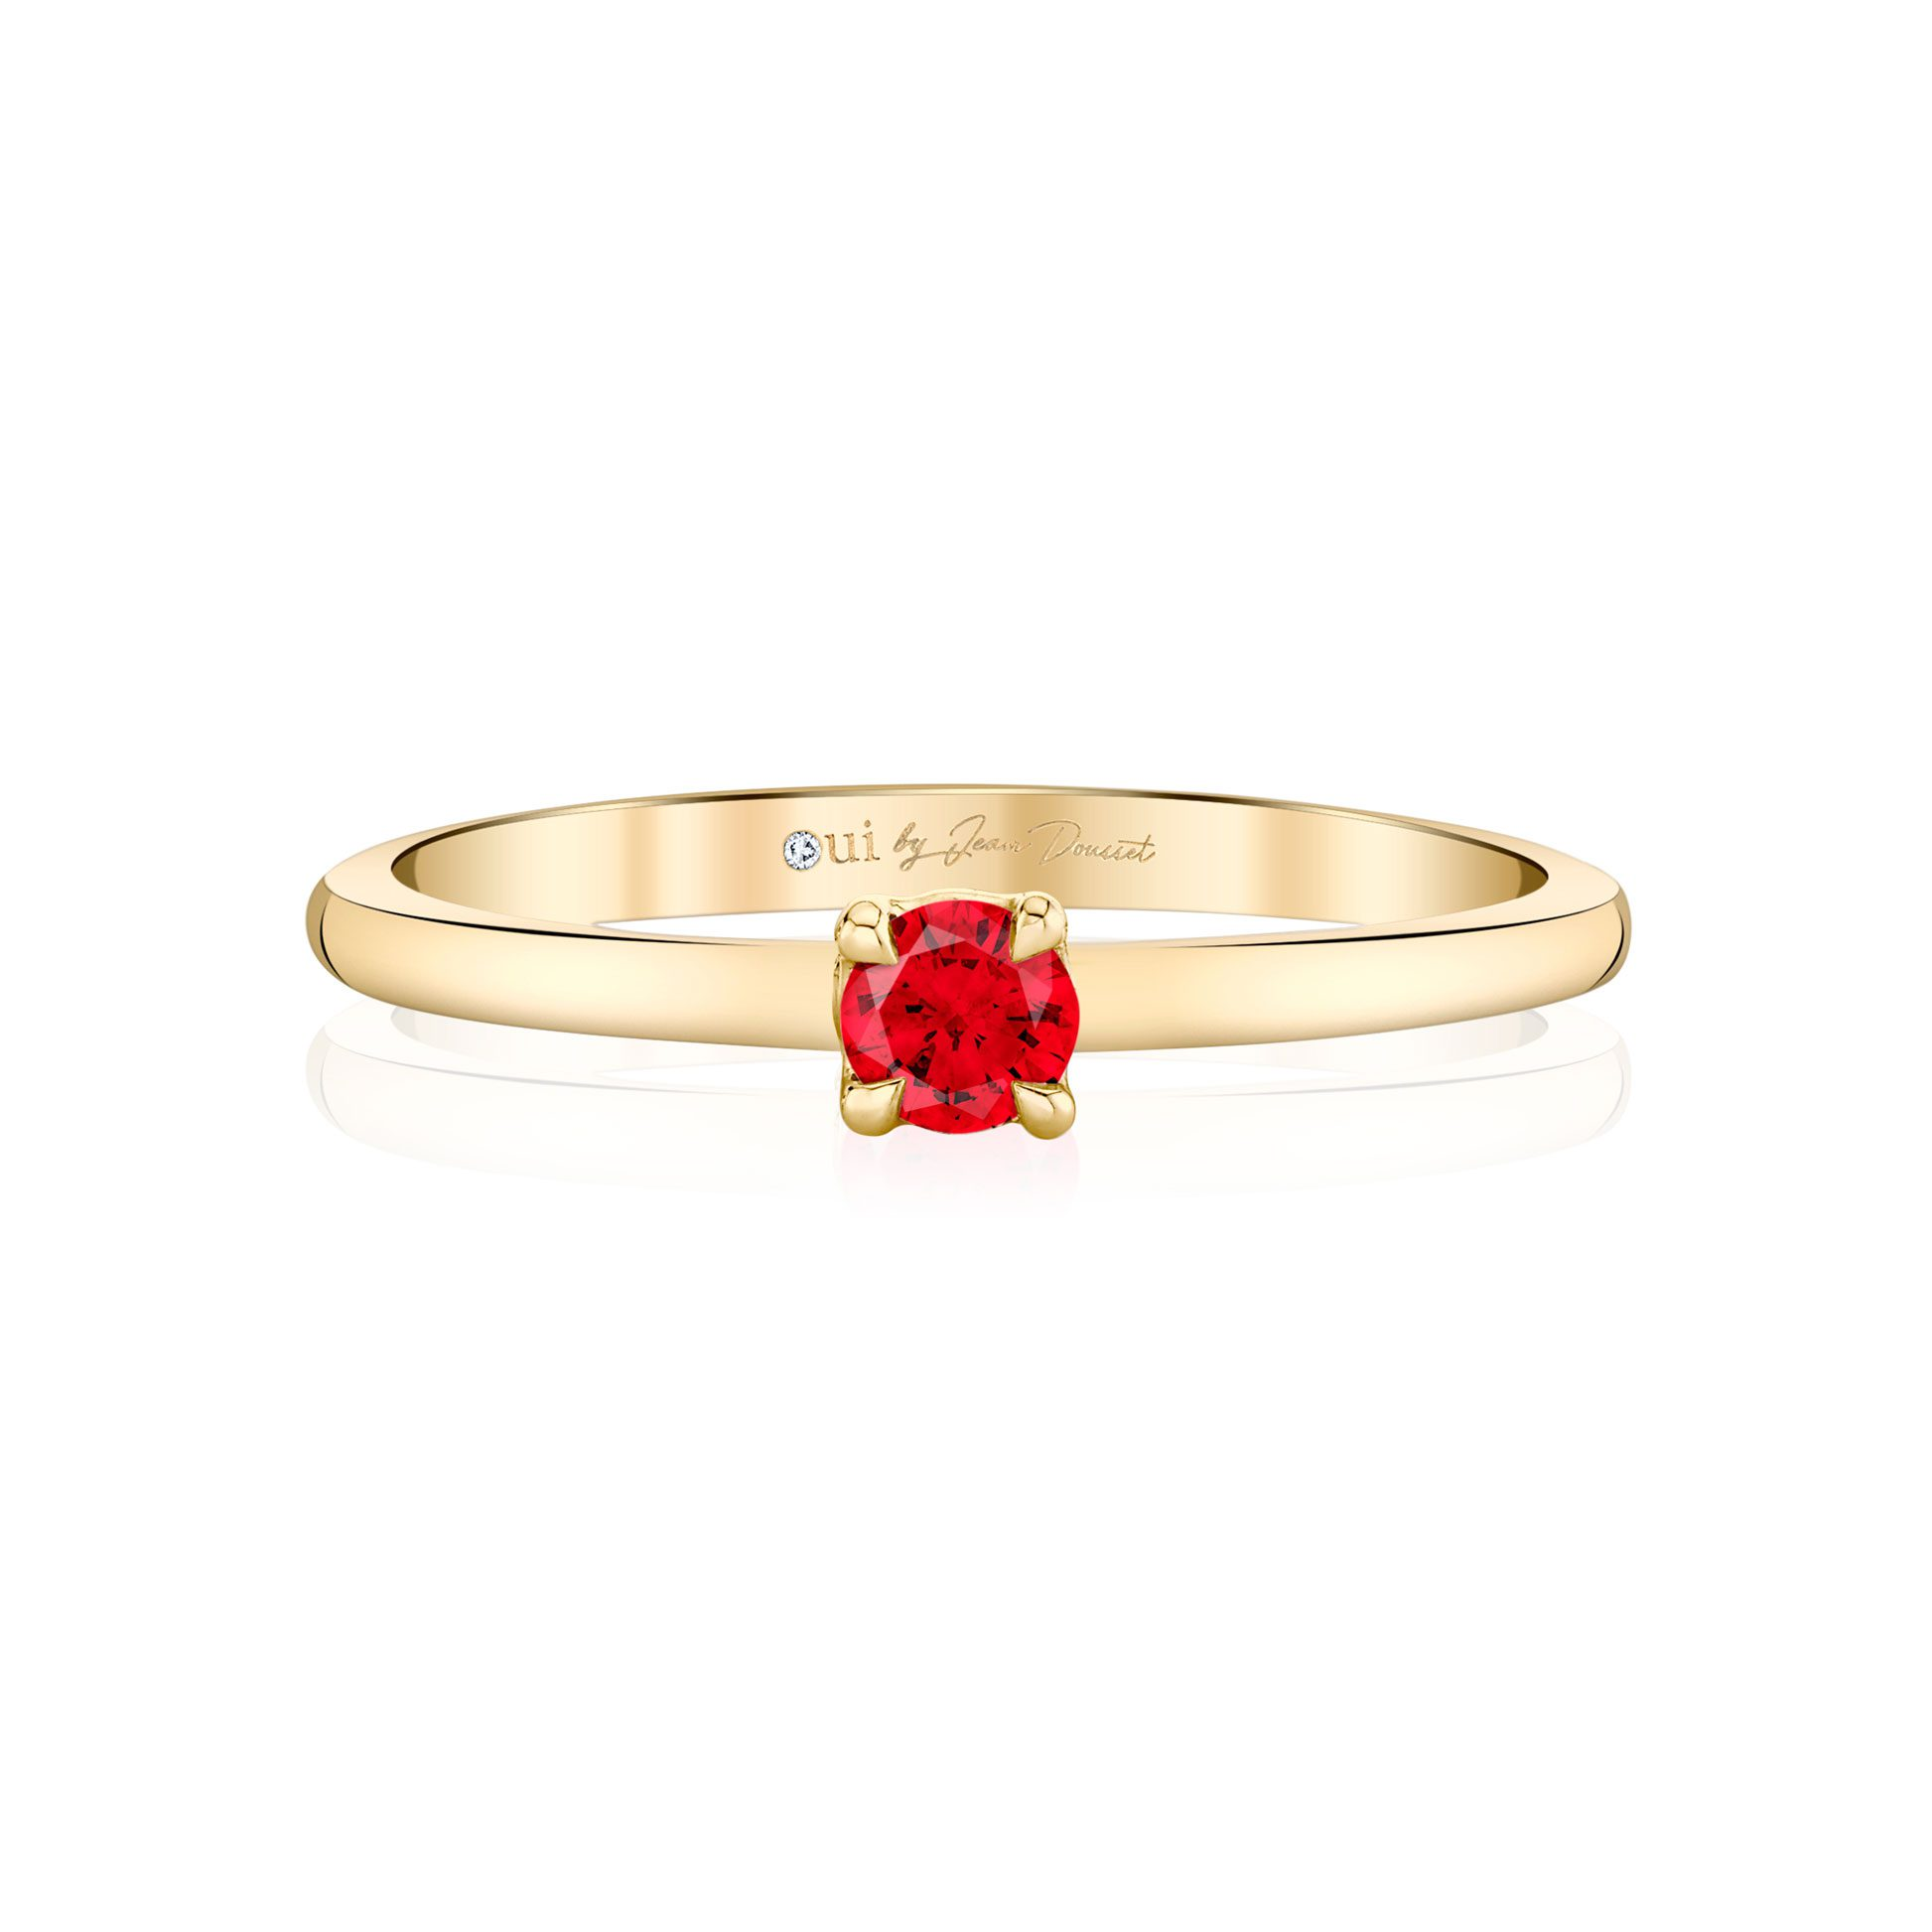 La Petite Round Brilliant Ruby Ring in 18k Yellow Gold Front View by Oui by Jean Dousset